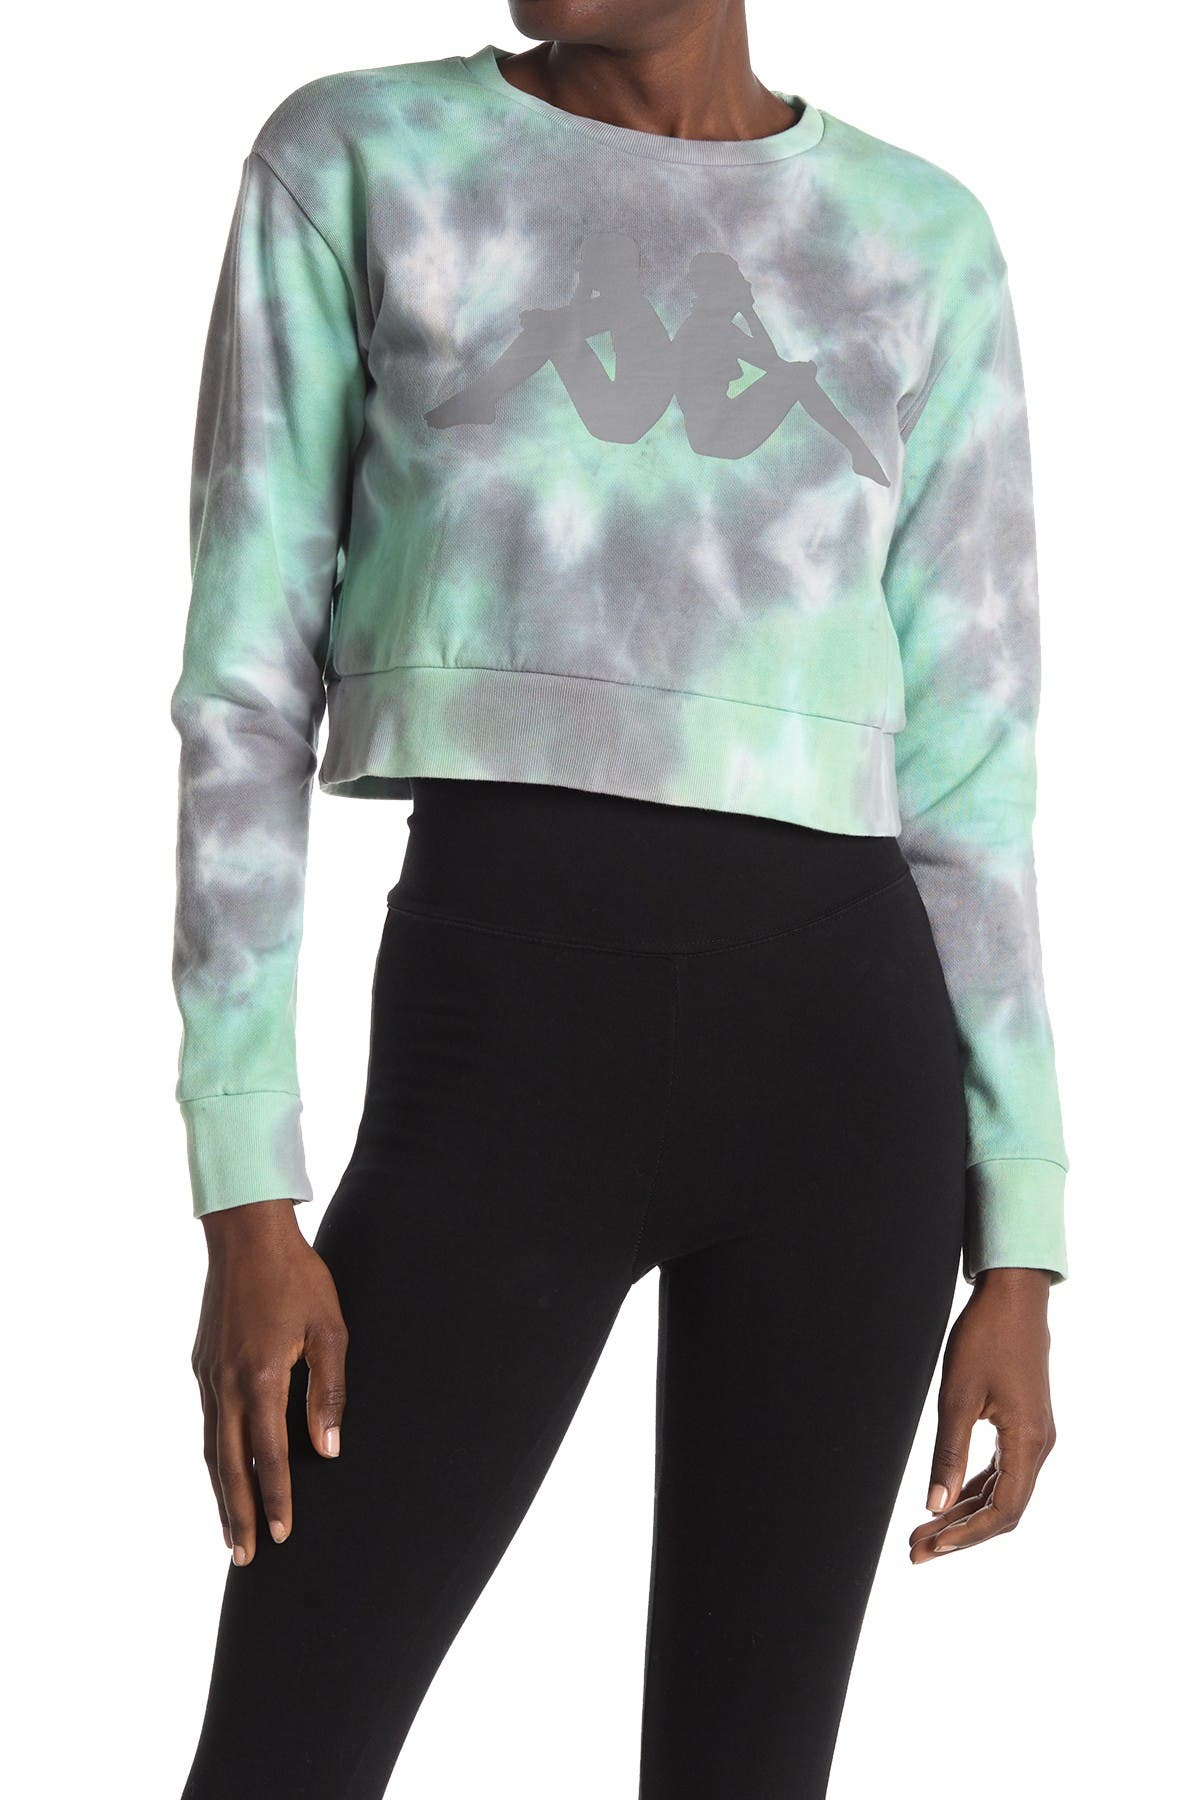 Image of Kappa Active Authentic Galz Sweatshirt